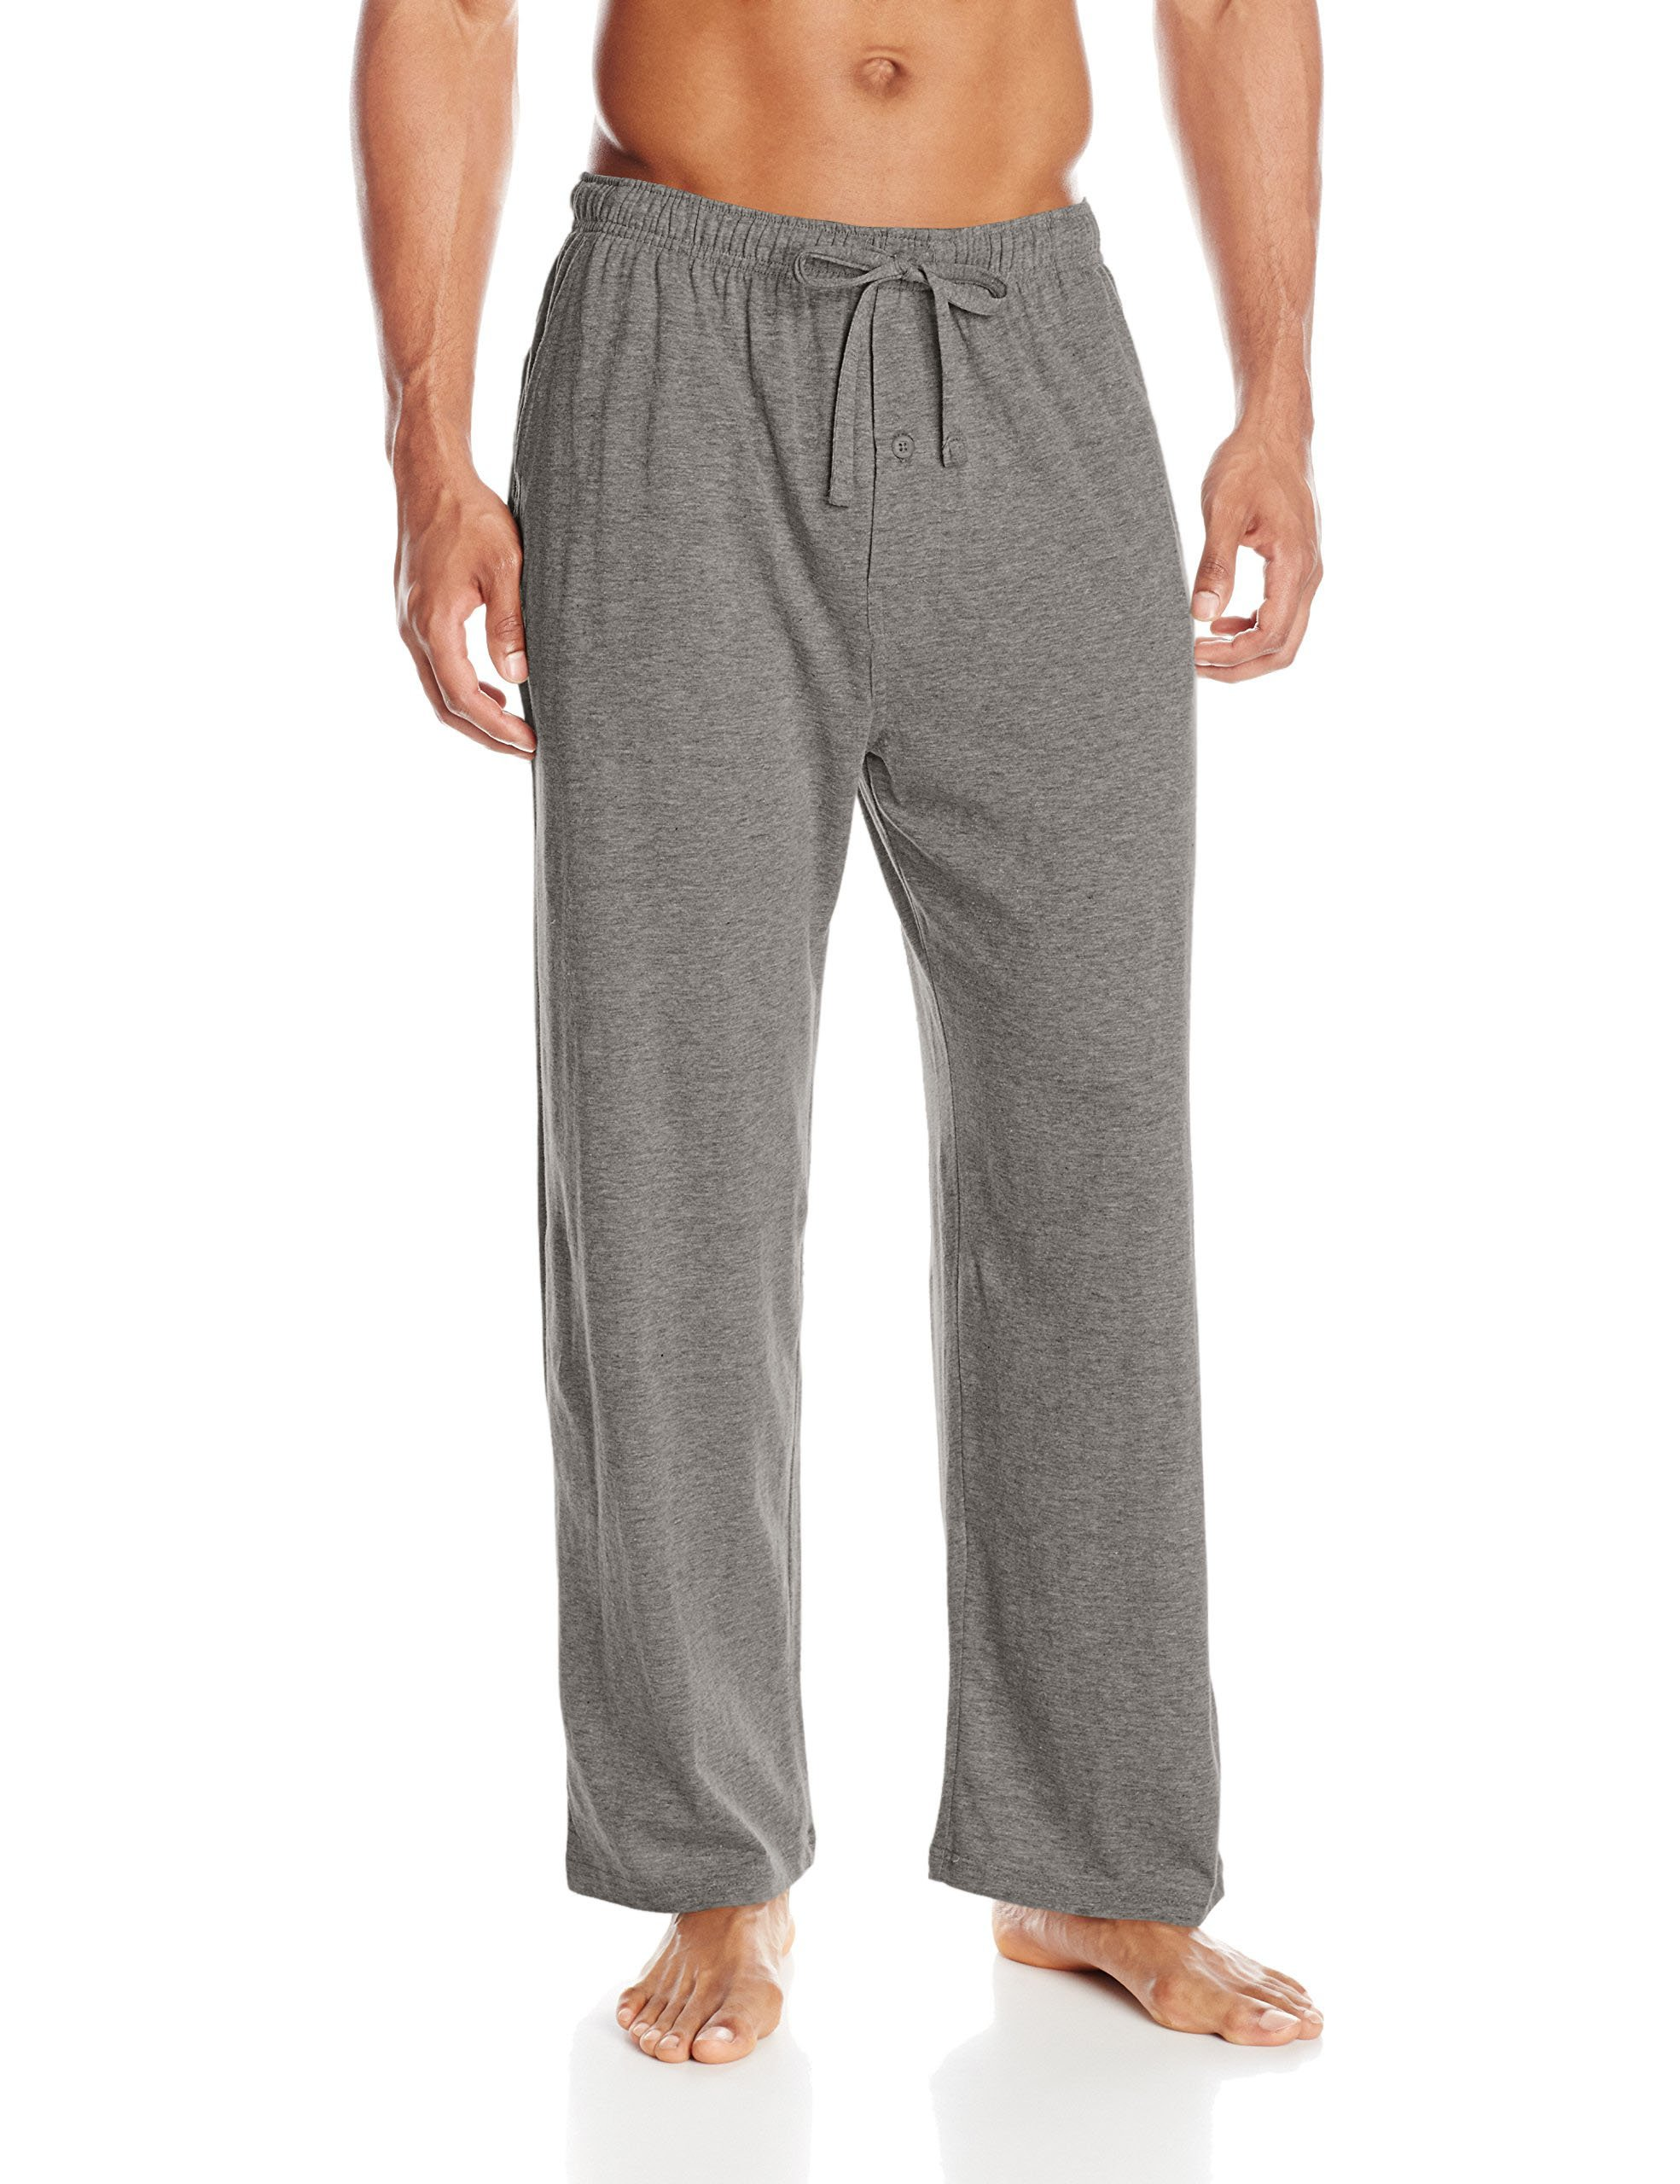 Fruit of the Loom Men's  Jersey Knit Sleep Pant, Grey Heather, Small